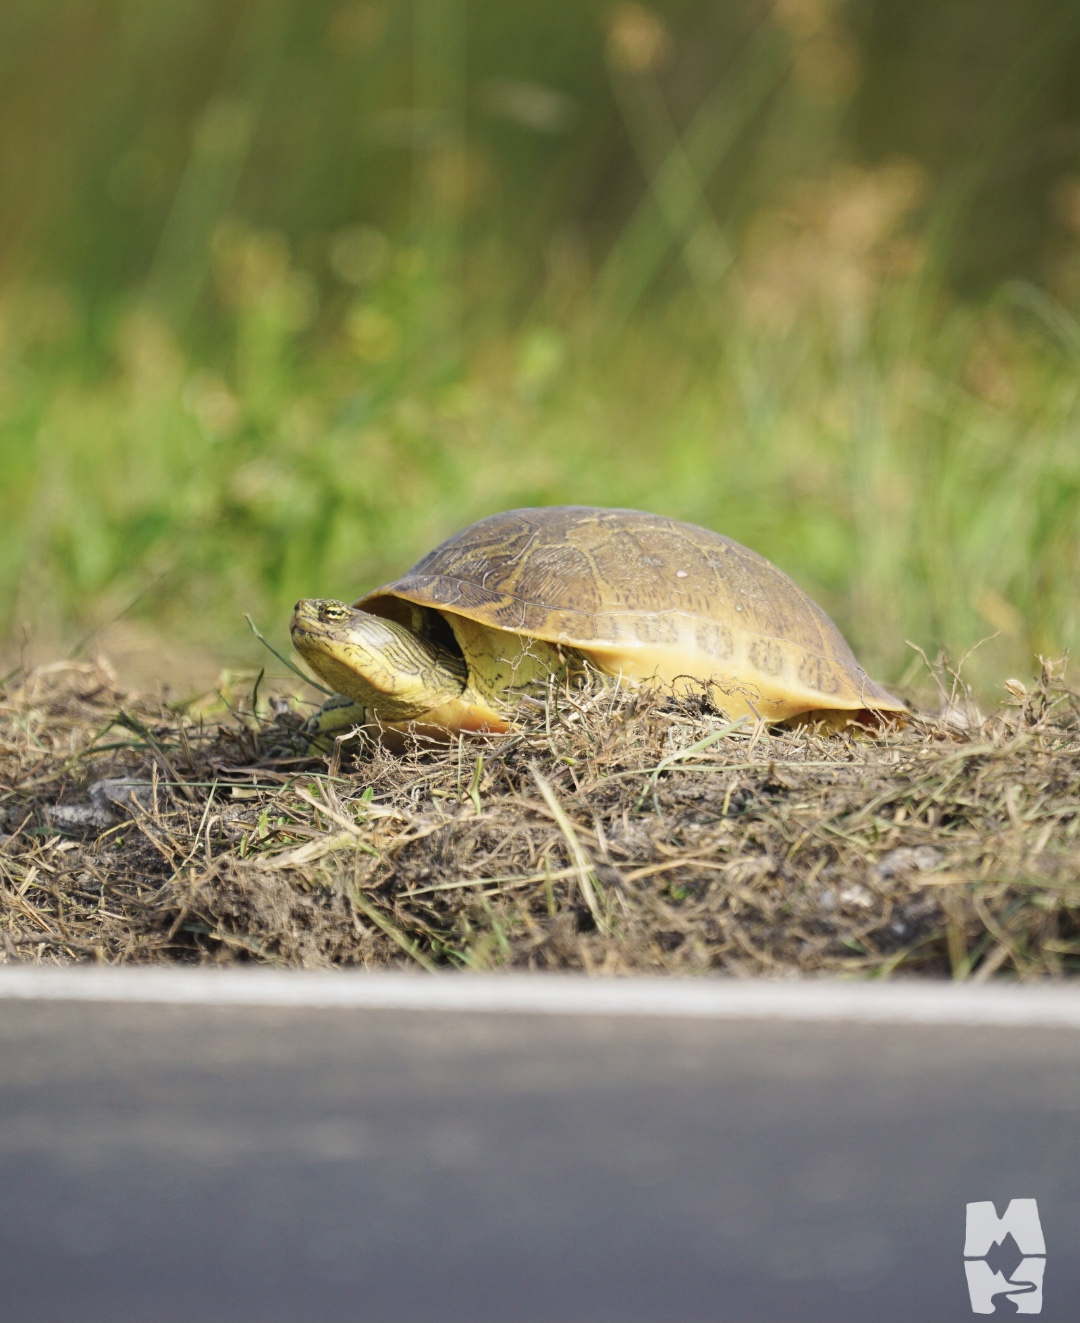 turtle near the edge of a busy road